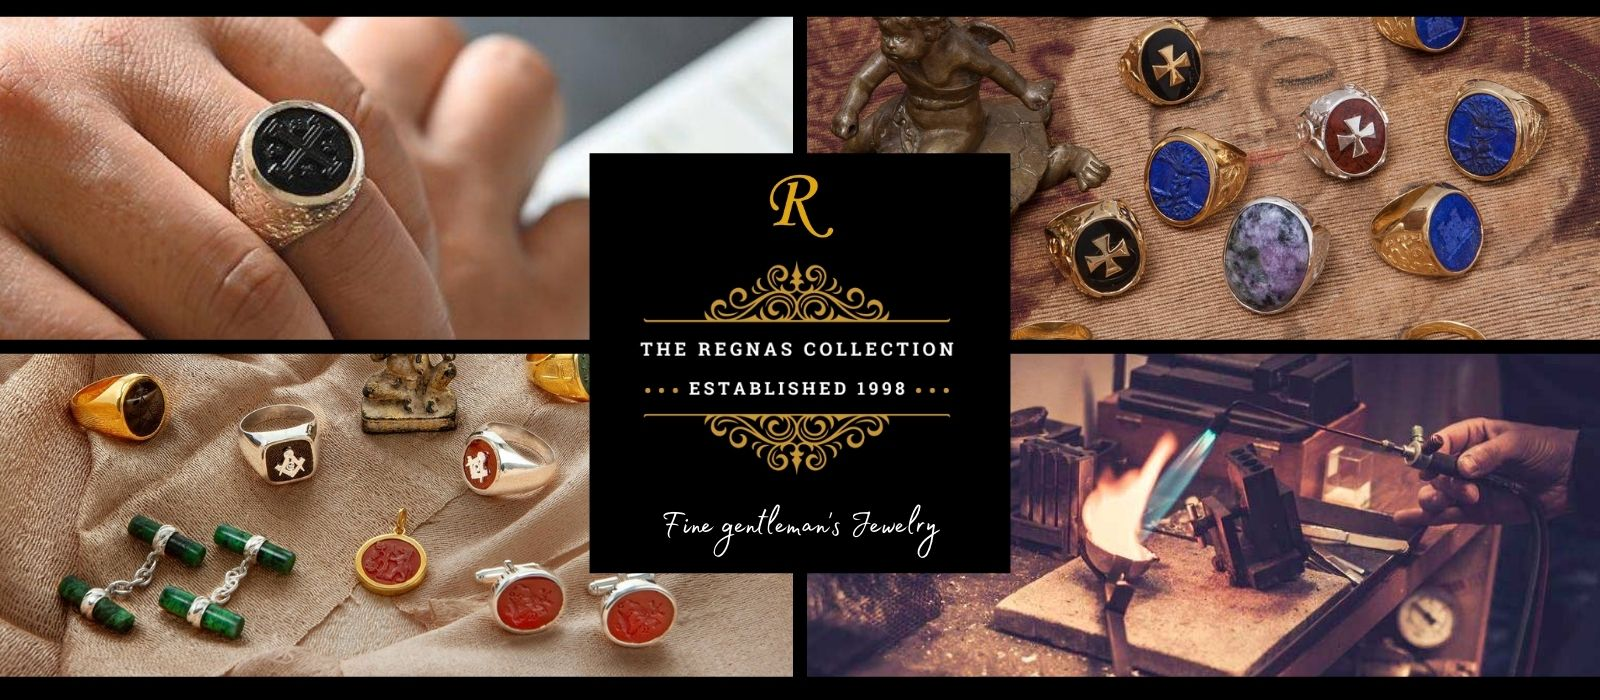 The Regnas Collection